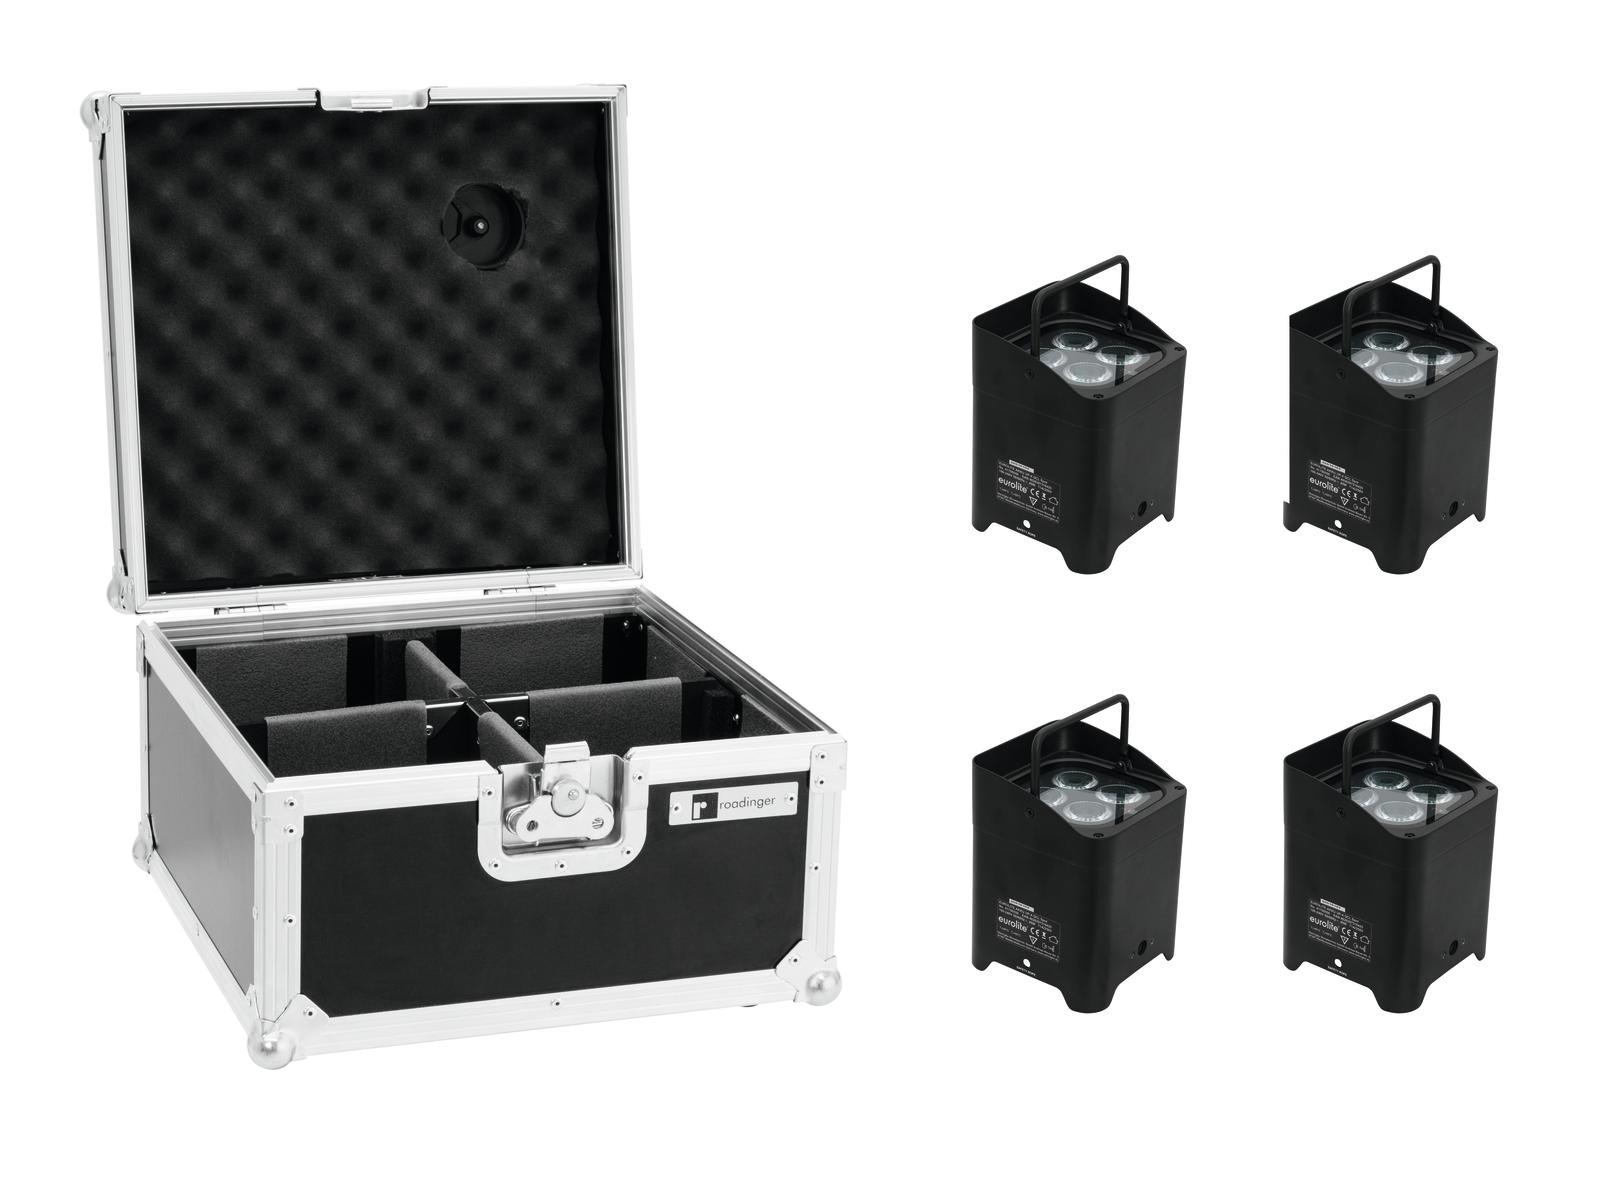 EUROLITE Set 4x AKKU UP-4 HCL Spot WDMX bk + Flightcase